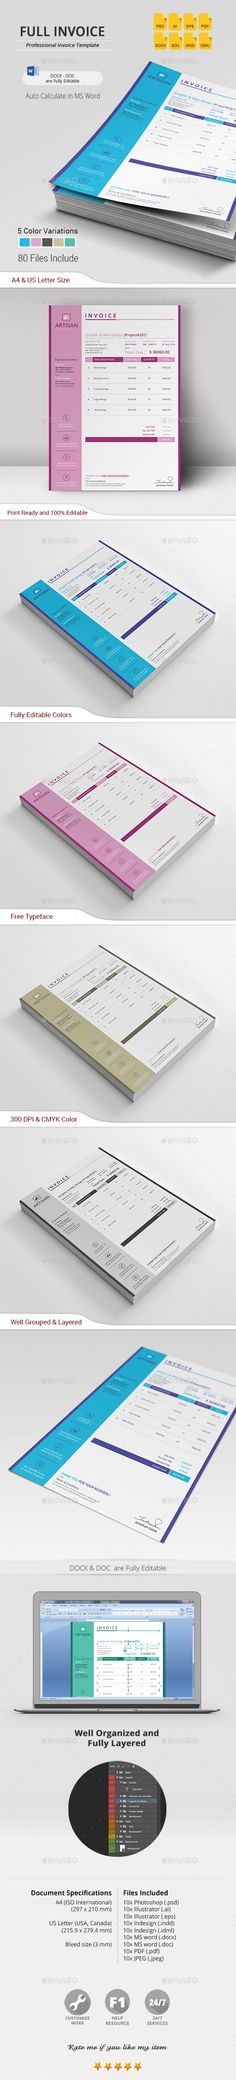 Invoice Template Download, Print and Stationery - invoice spreadsheet template free